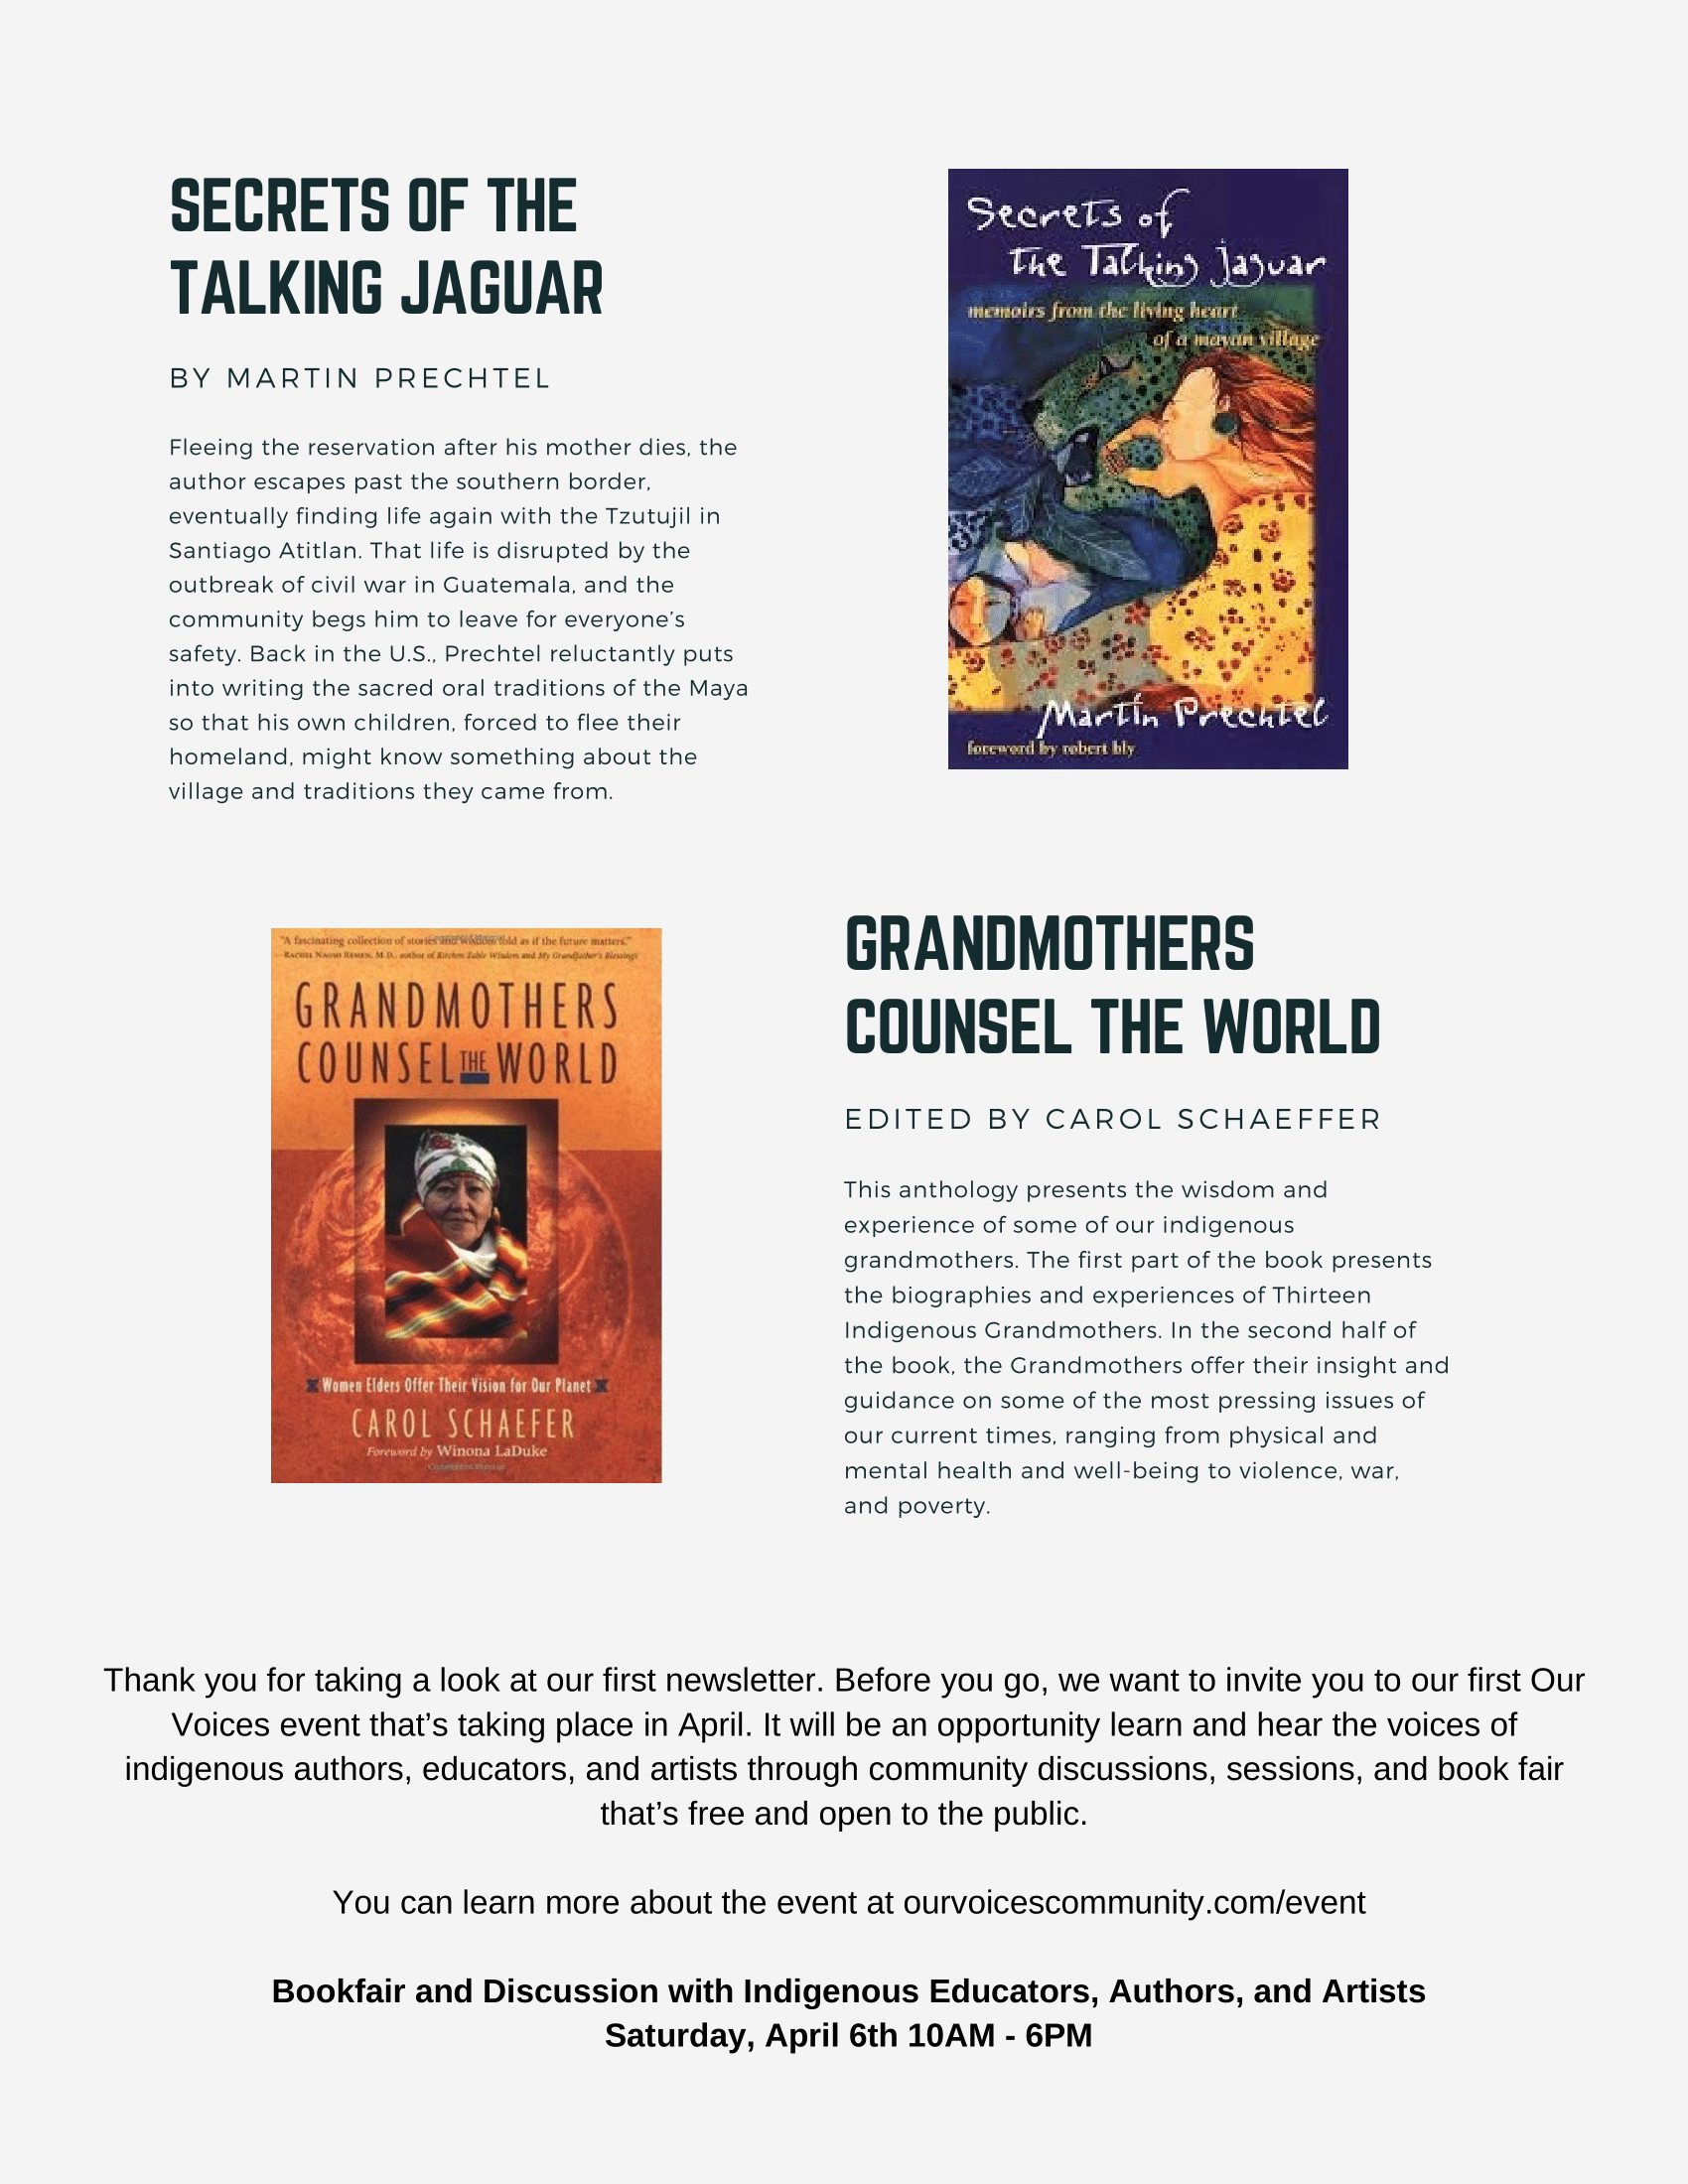 Our Voices newsletter-3.png